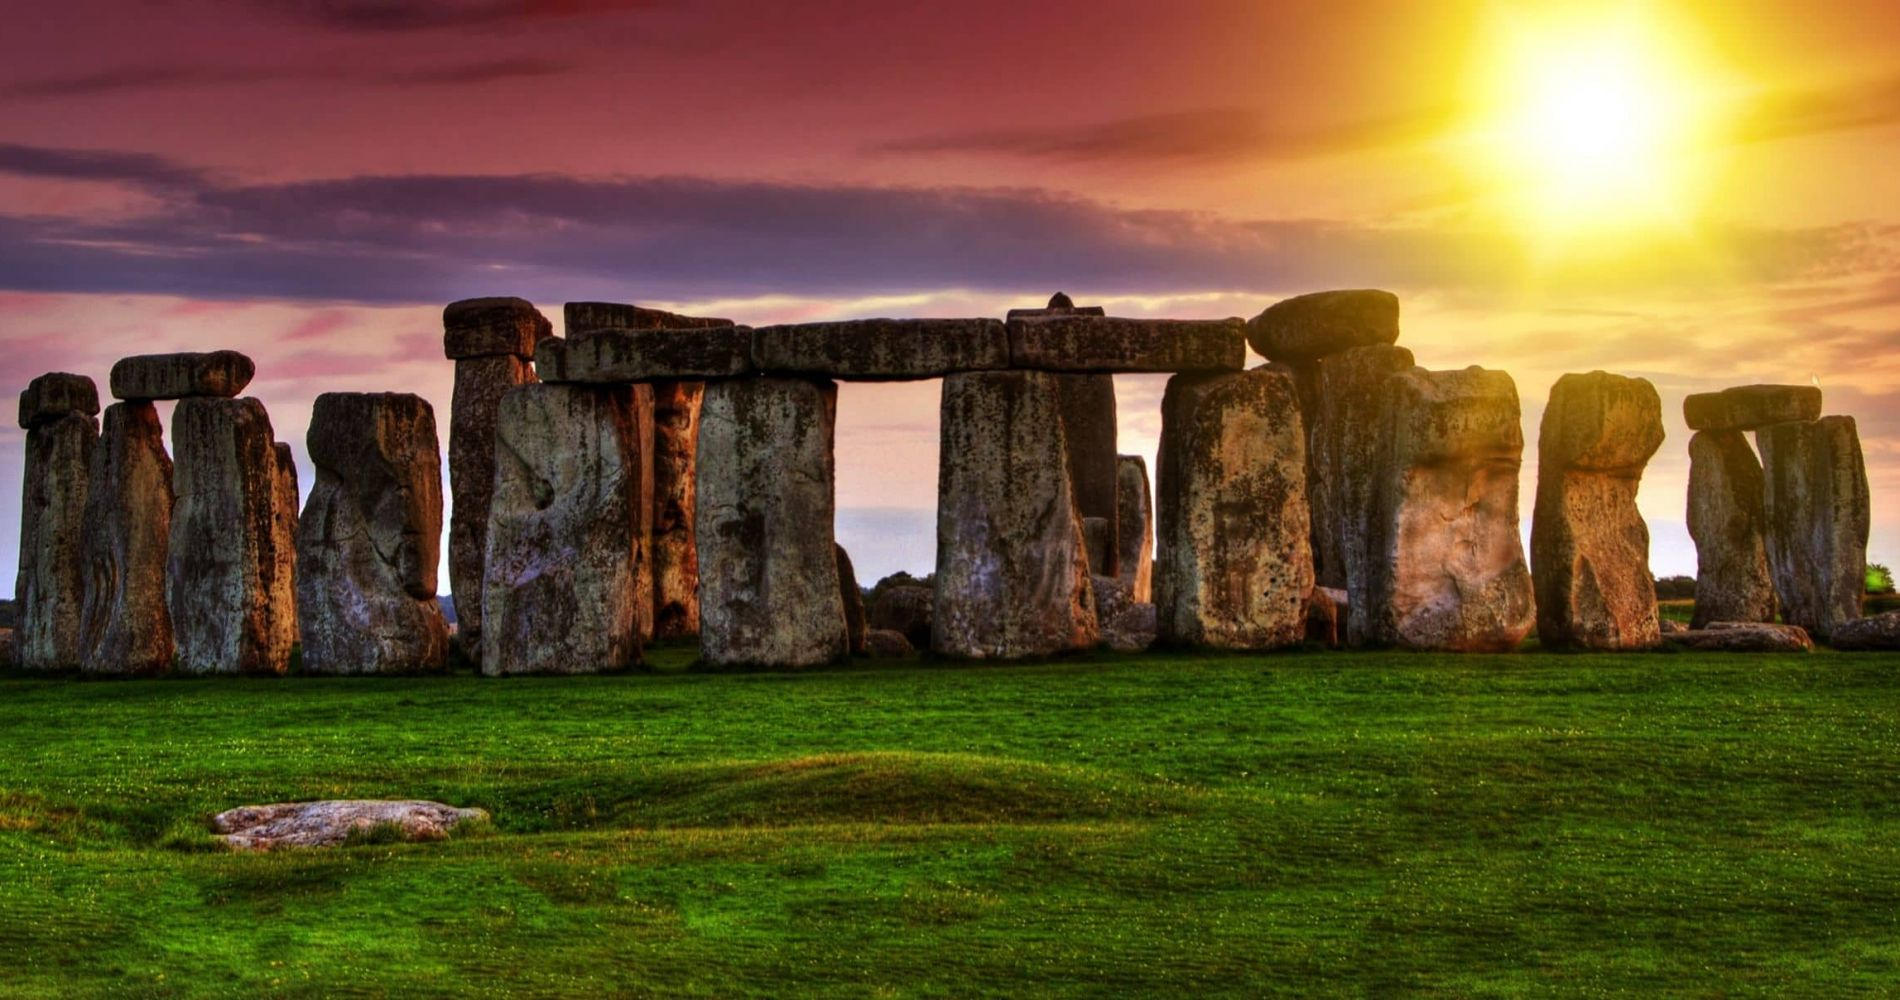 Visit Bath and Discover the Mysterious Stonehenge in The UK